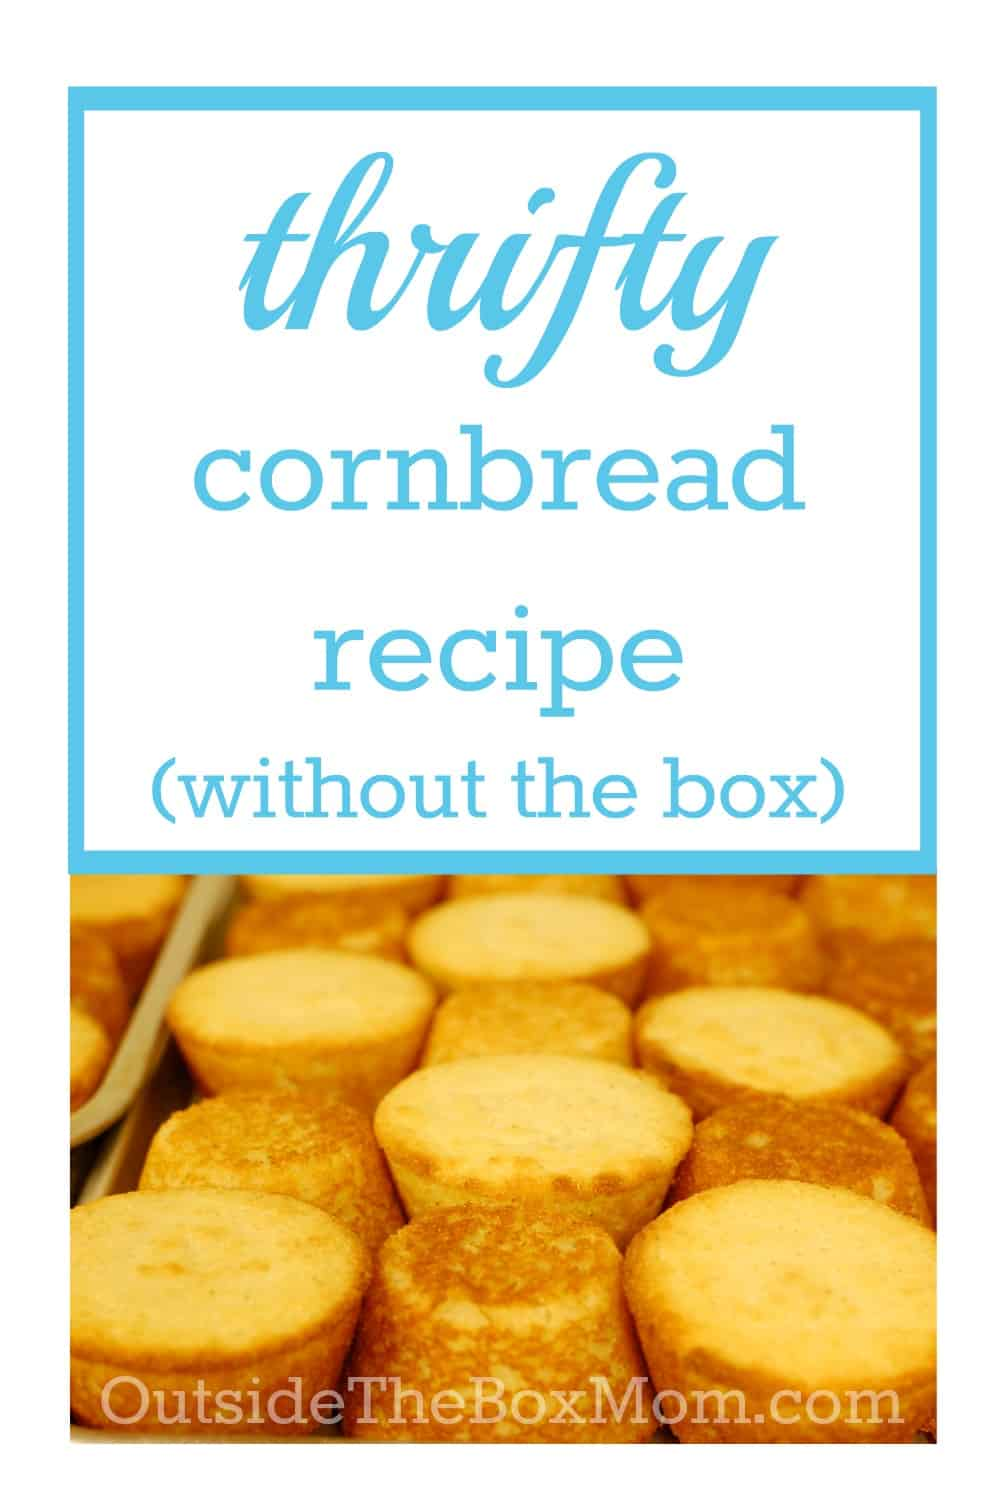 thrifty-cornbread-recipe